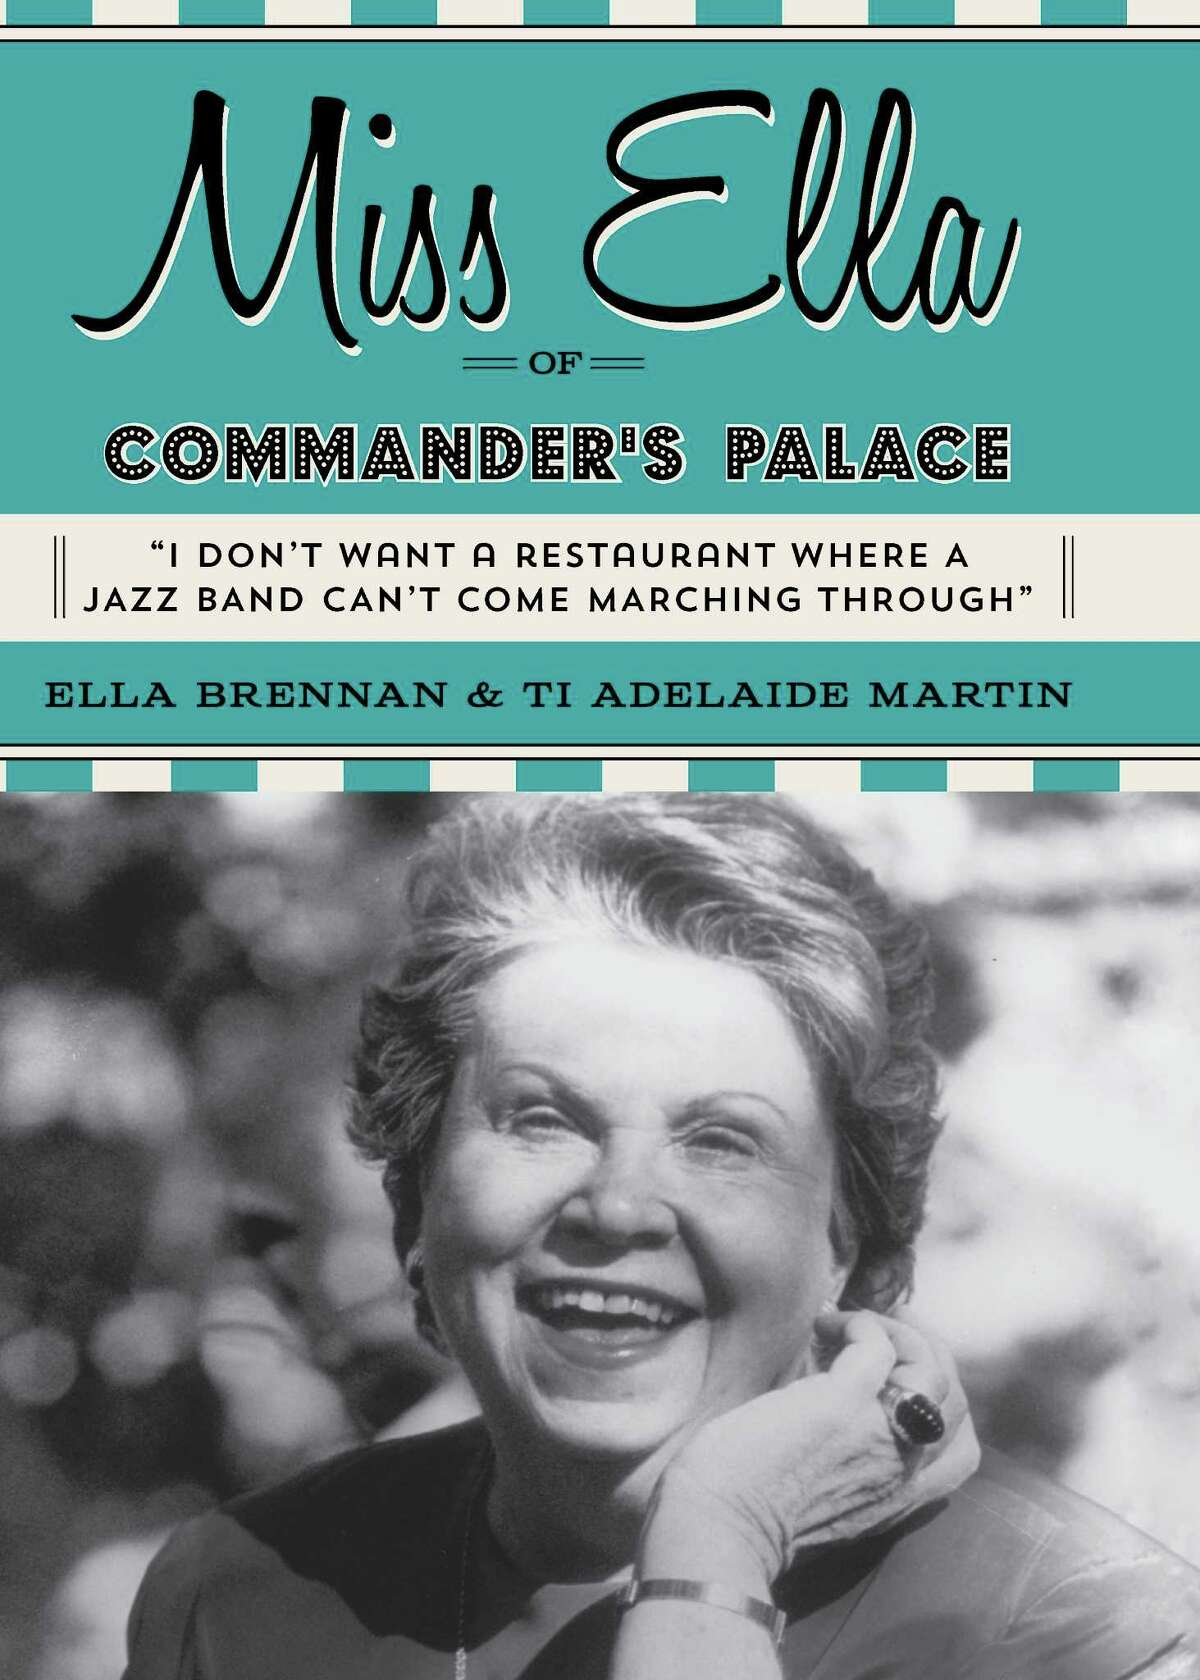 """Cover: """"Miss Ella of Commander's Palace"""" by Ella Brennan and Ti Martin (Gibbs Smith, $27.99). The autobiography of Ella Brennan, the matriarch of a New Orleans restaurant empire, who is considered one of the country's most influential restaurateurs through her work at Brennan's and Commander's Palace."""